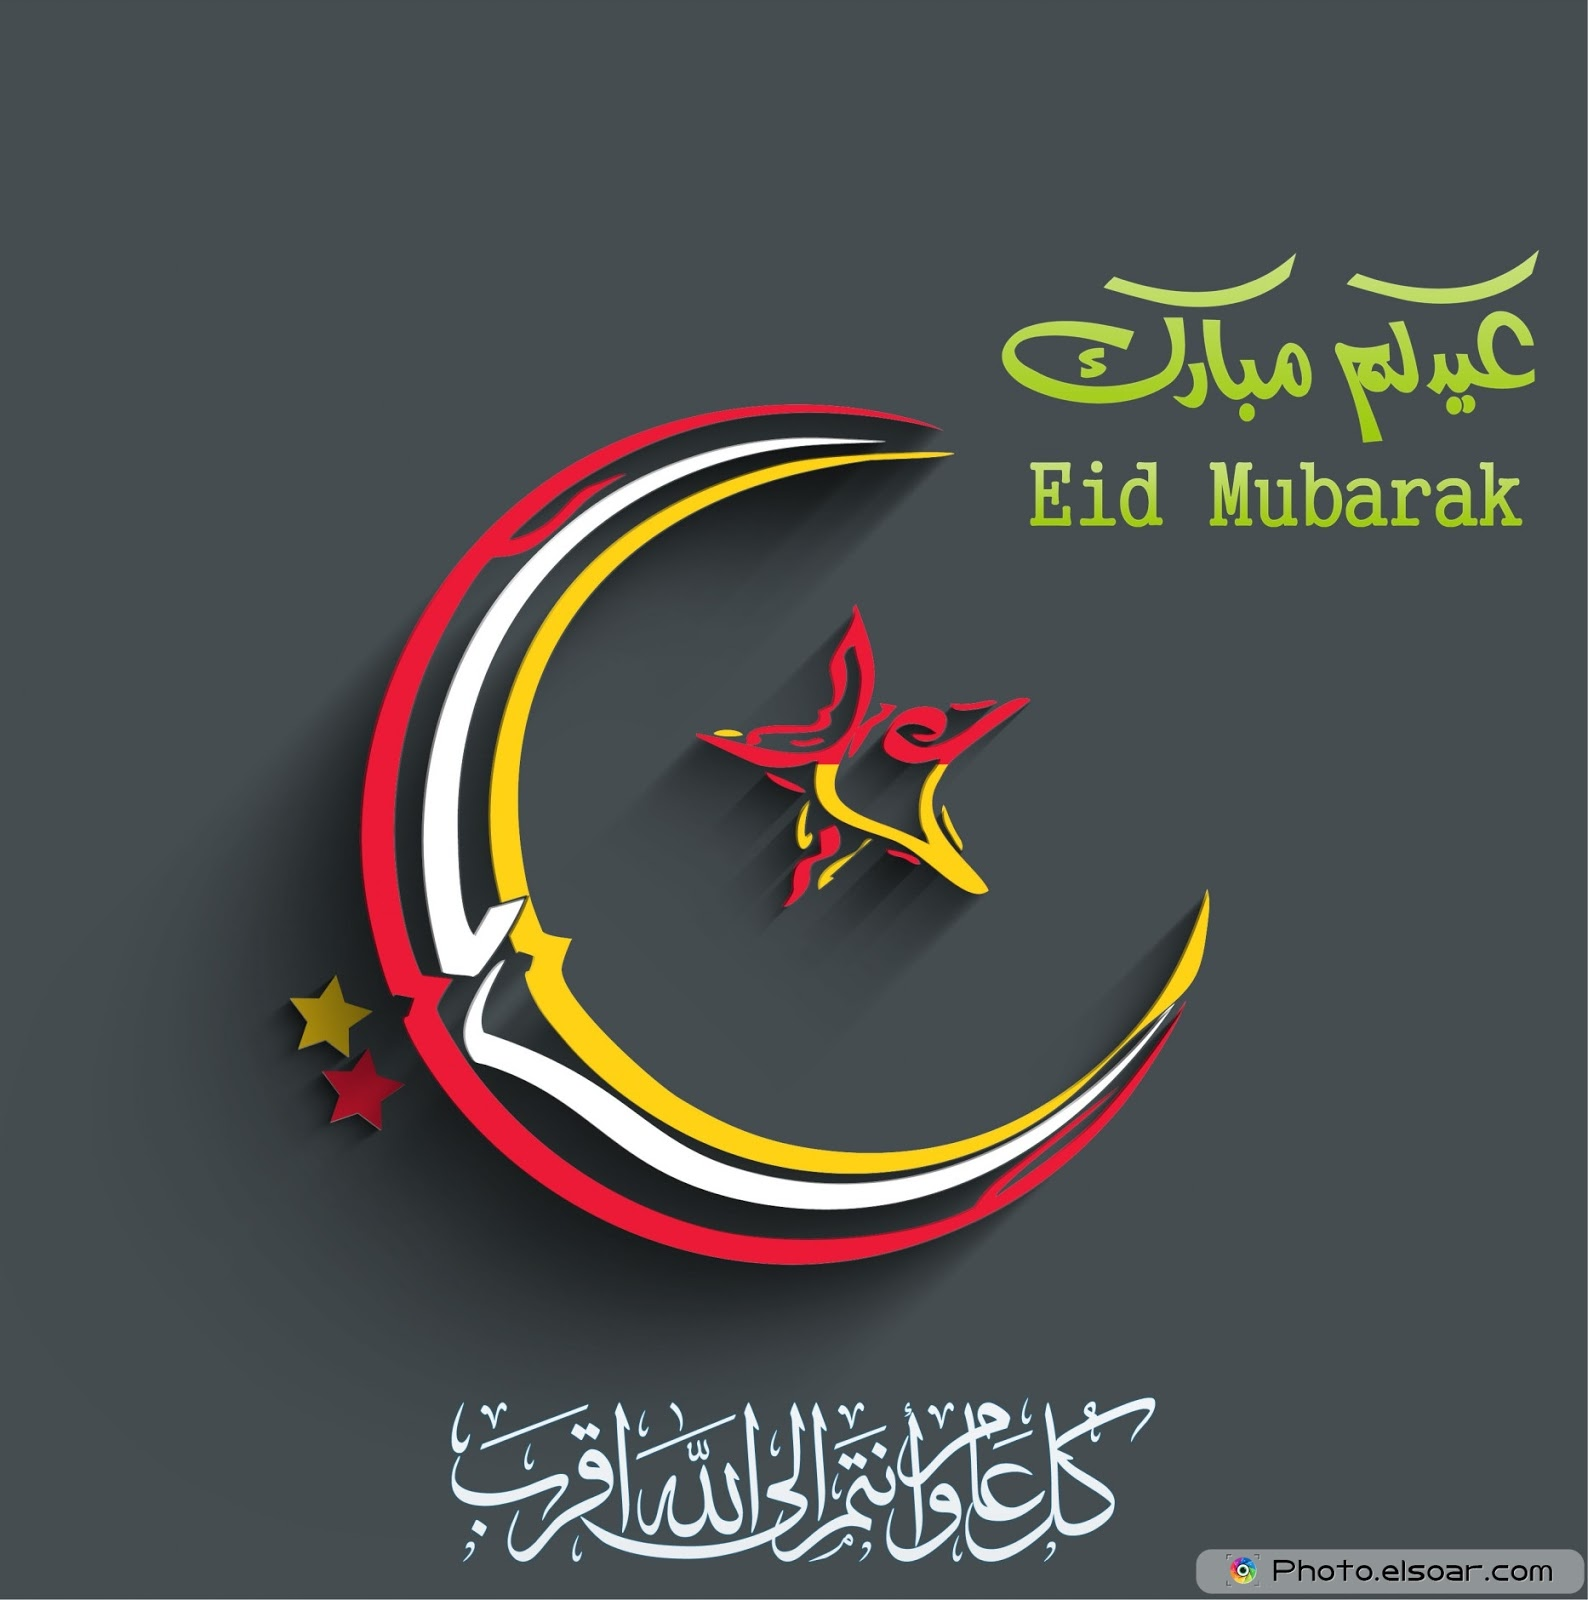 Latest eid ul adha 2016 wishes messages zaib abbasi latest eid ul adha 2016 wishes messages kristyandbryce Choice Image